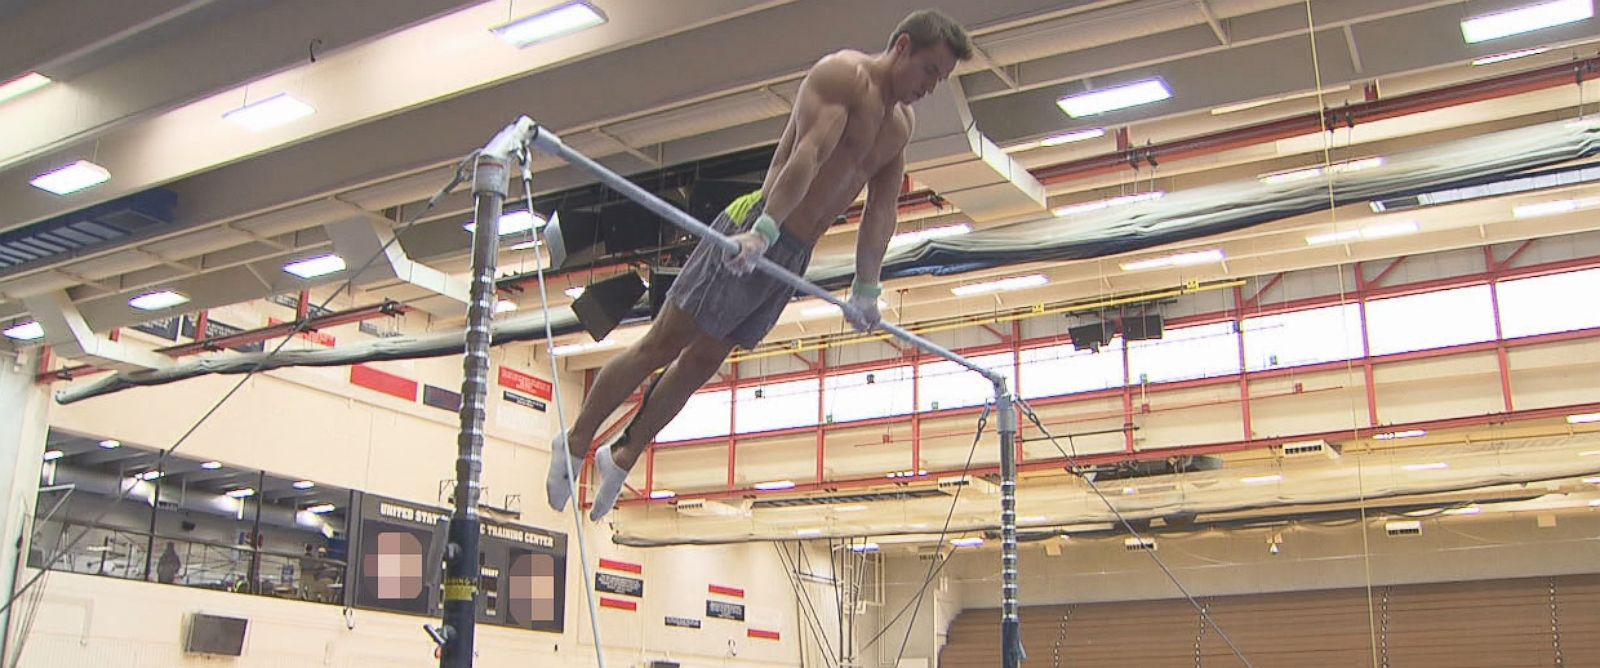 """PHOTO: ABC News """"Nightline"""" was invited to spend time with the U.S. Olympic mens gymnastics team during a training session in Colorado Springs, Colorado, for the 2016 Summer Games."""